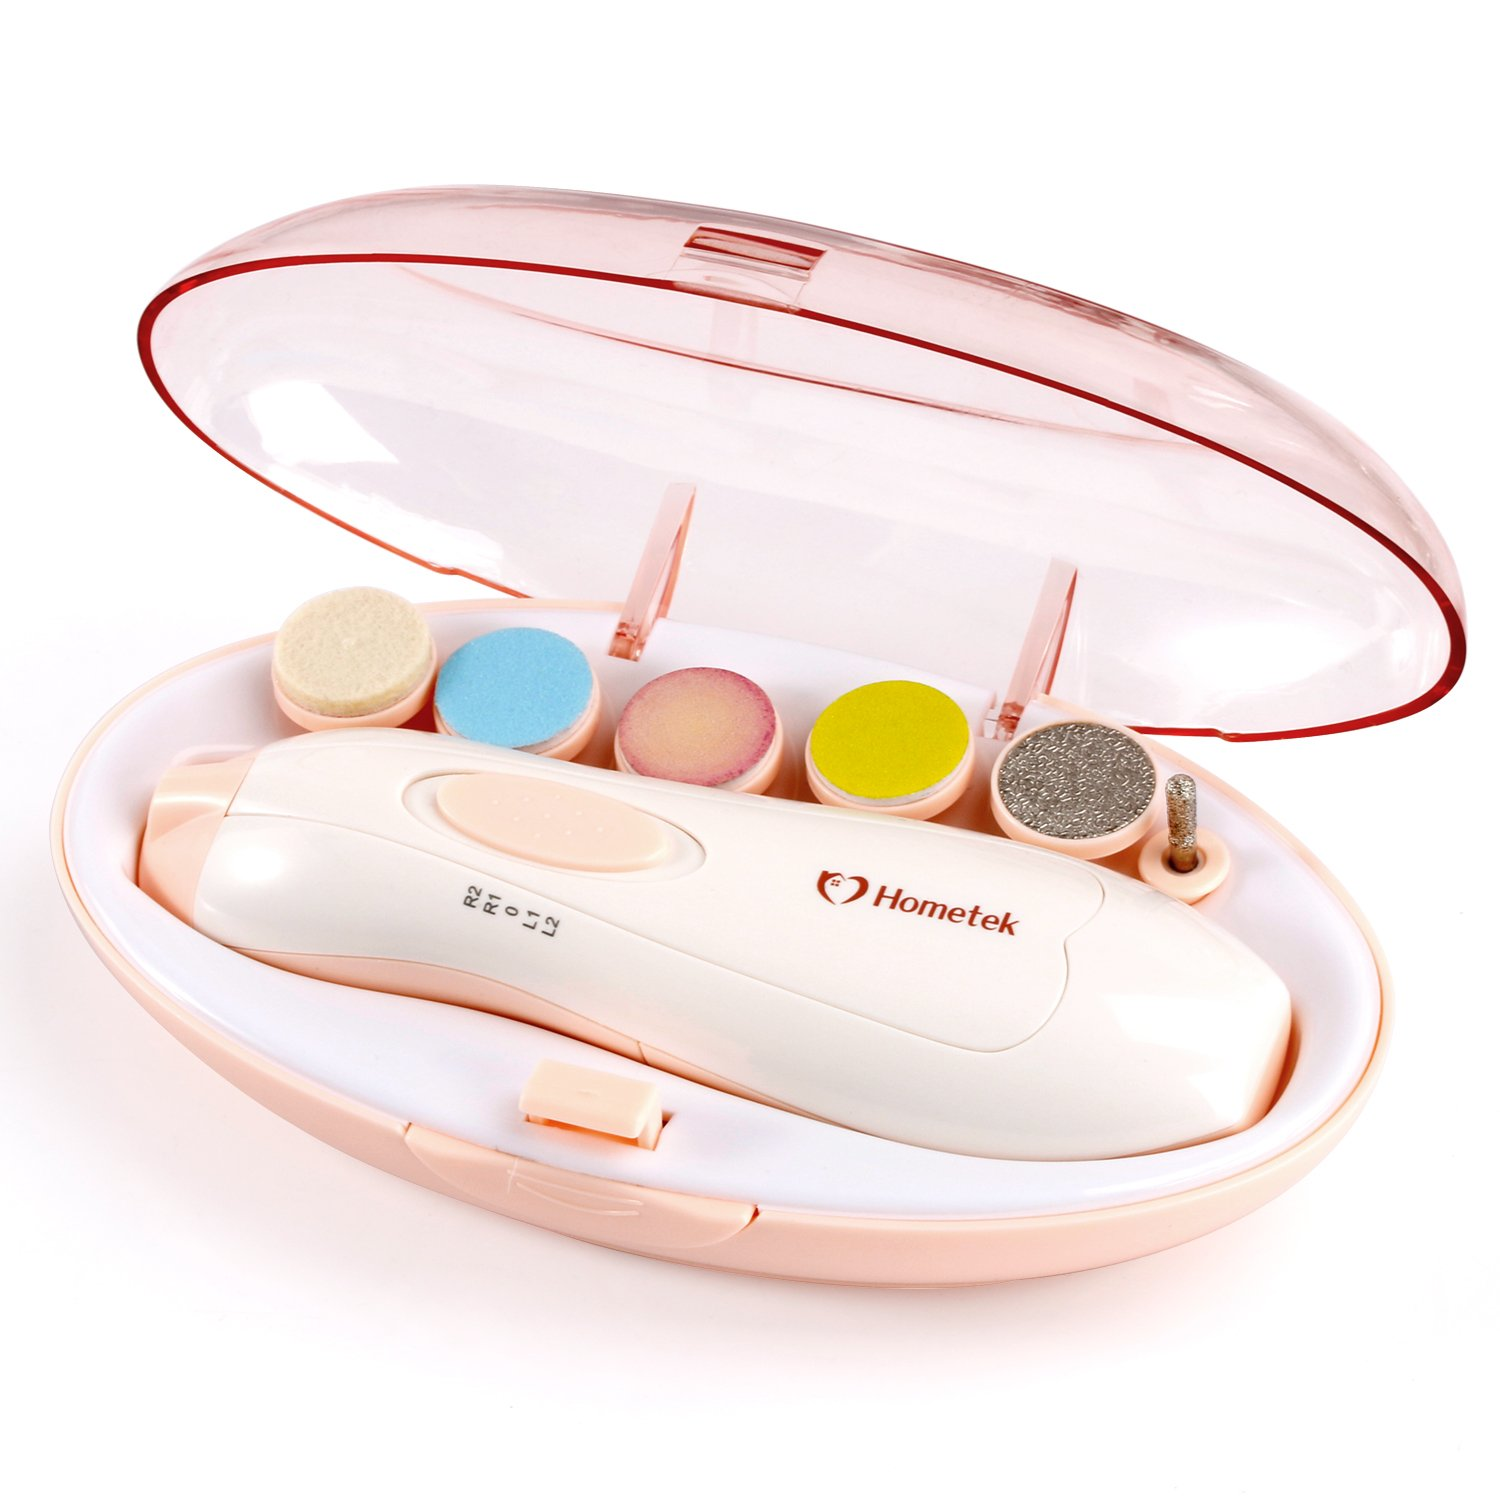 Baby Nail File Manicure Set - Safe Electric Nail Clipper Baby Nail Trimmer with LED Light for Newborn Infant Toddler Kids Adults Women Toes and Fingernails, Perfect Baby Shower Gift (Pink)